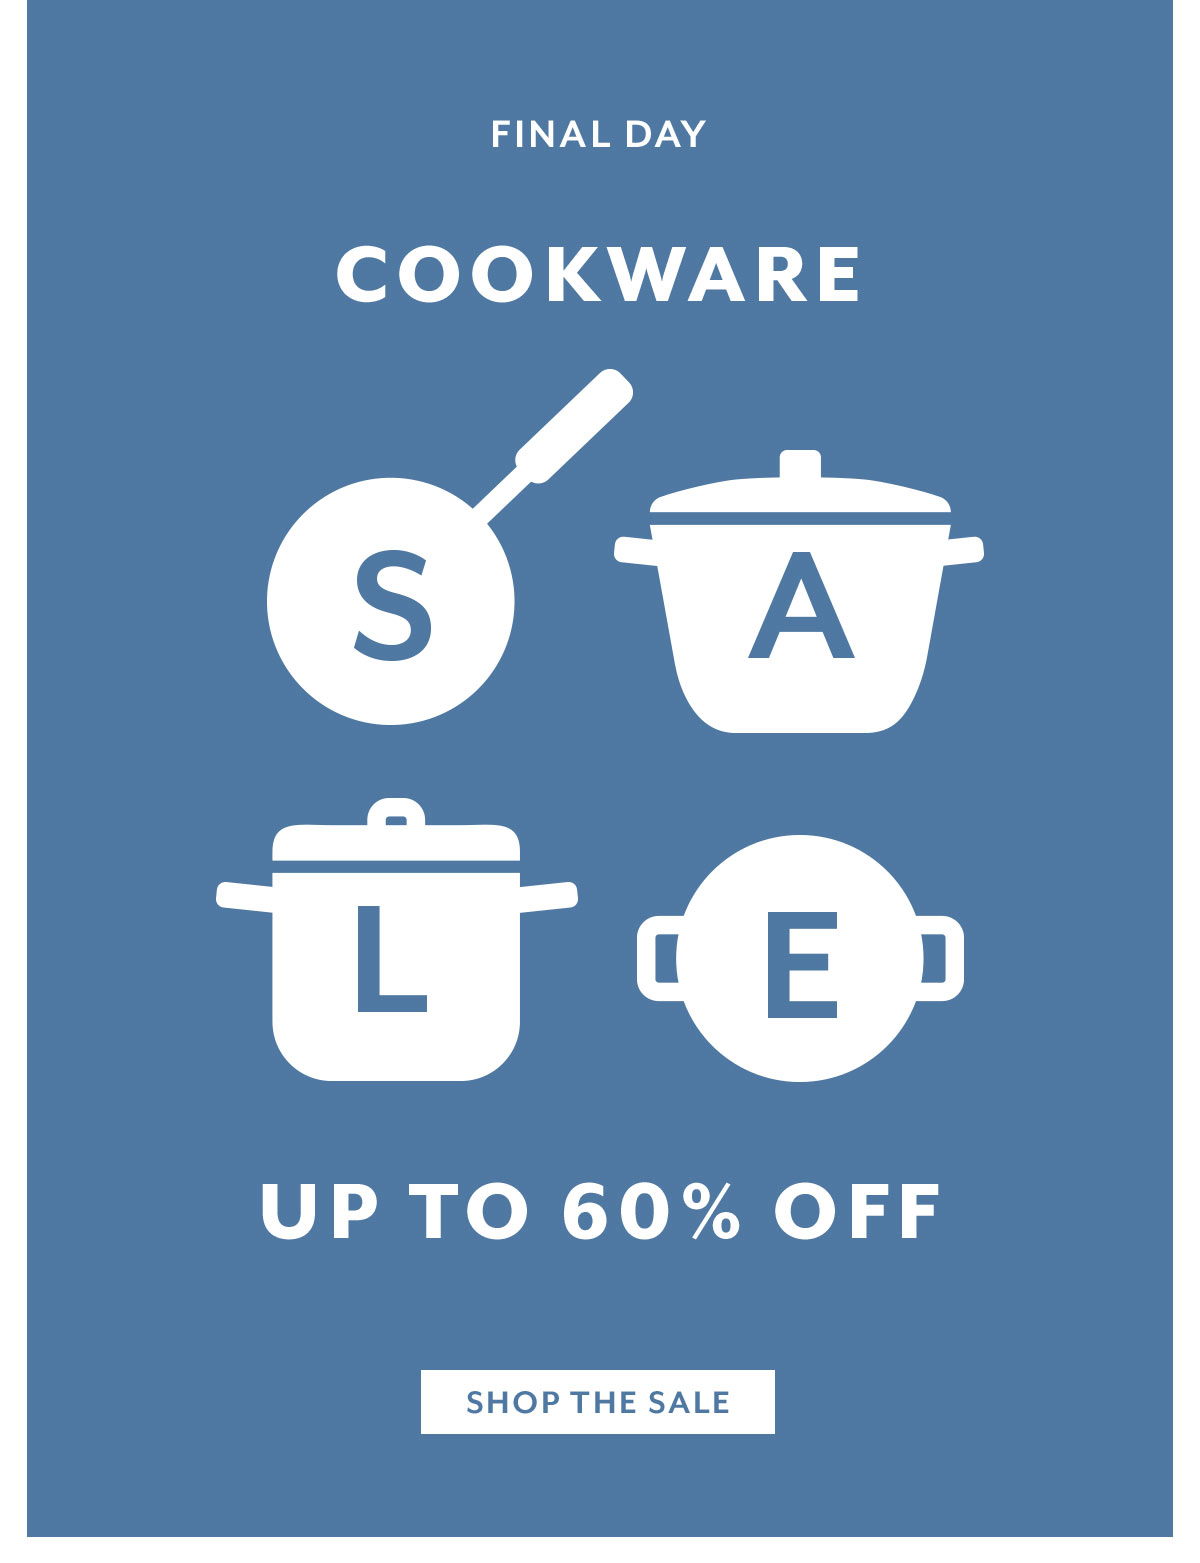 Cookware Sale • Final Day